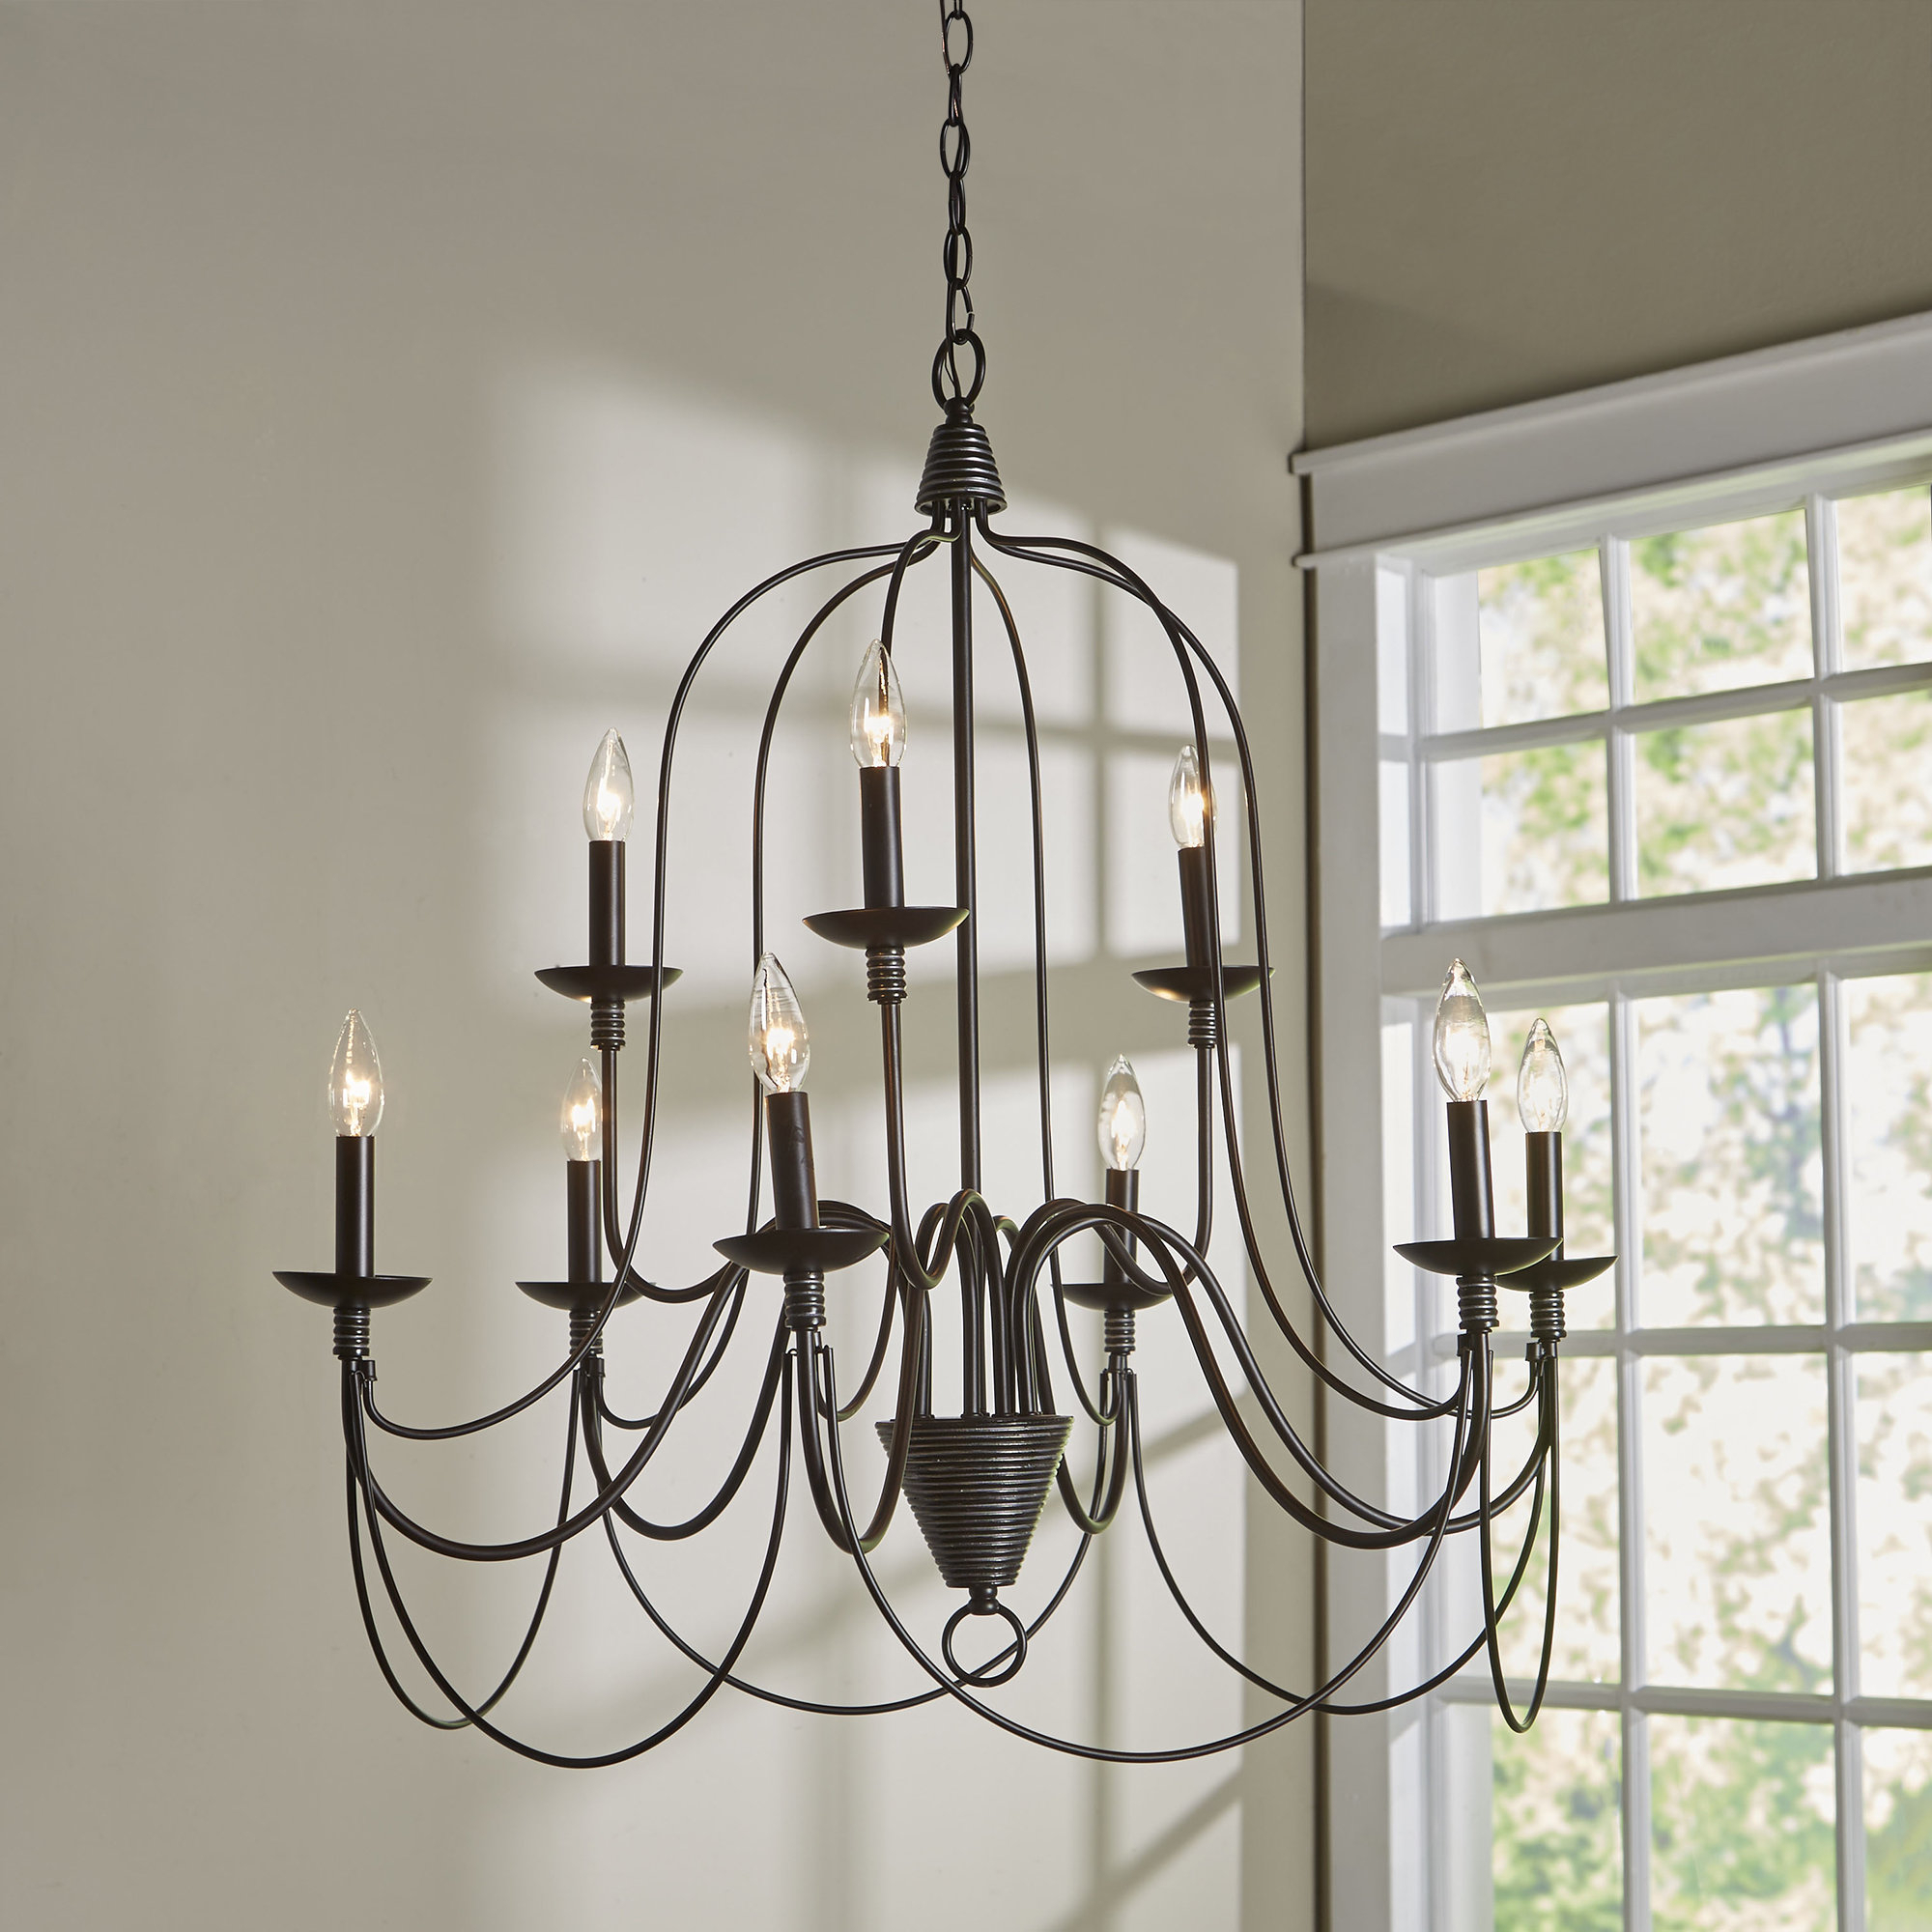 Watford 9 Light Candle Style Chandelier Intended For Famous Giverny 9 Light Candle Style Chandeliers (Gallery 6 of 20)